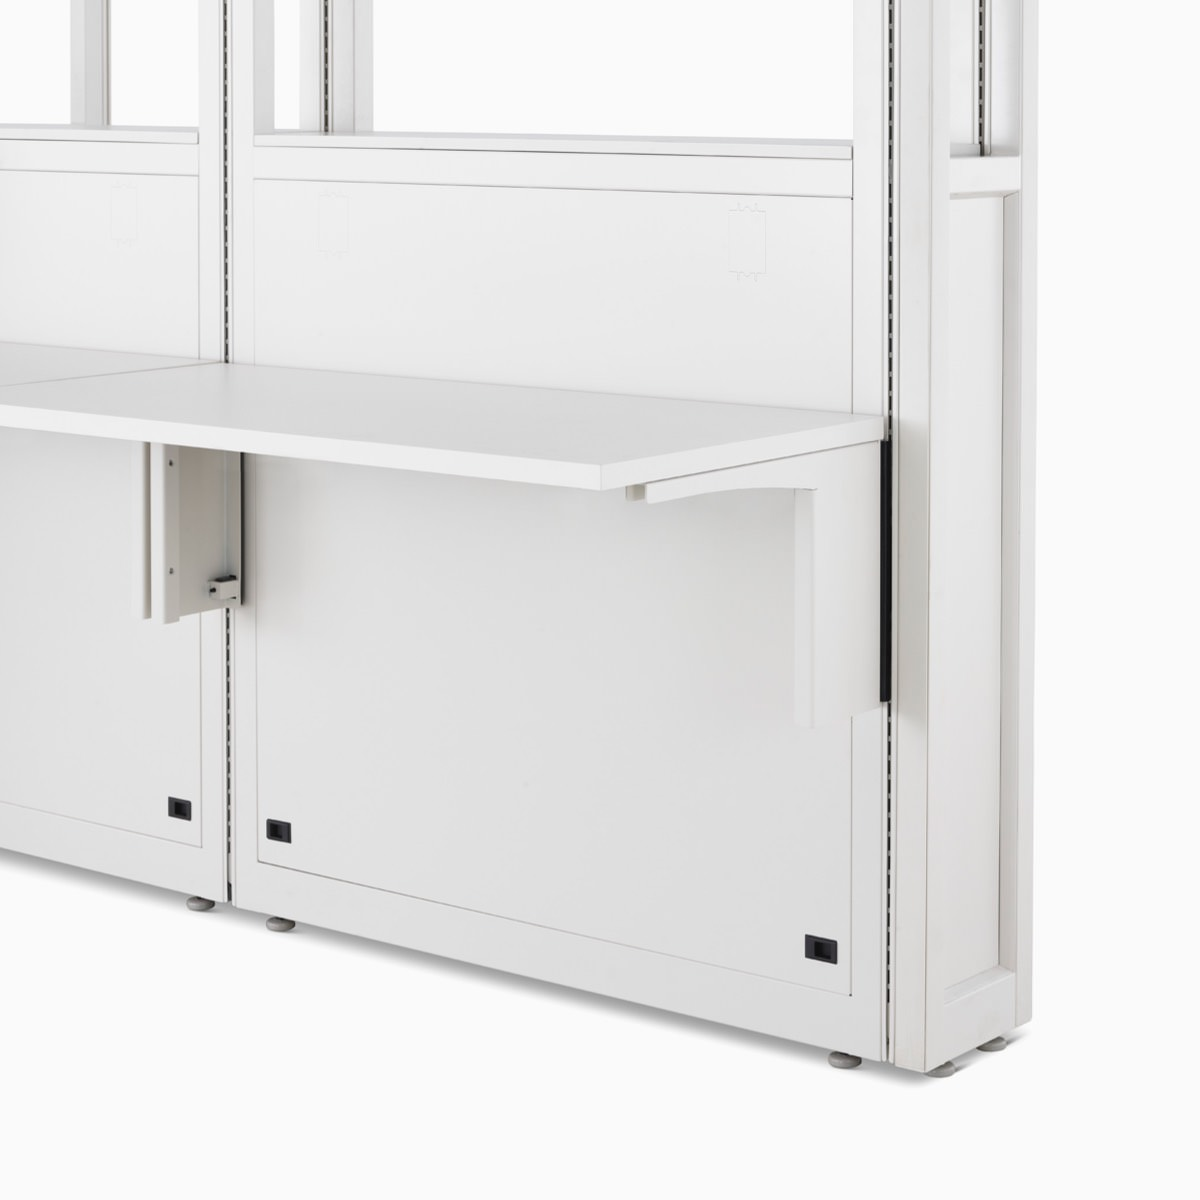 Detail of Co/Struc System module with work surfaces in soft white.